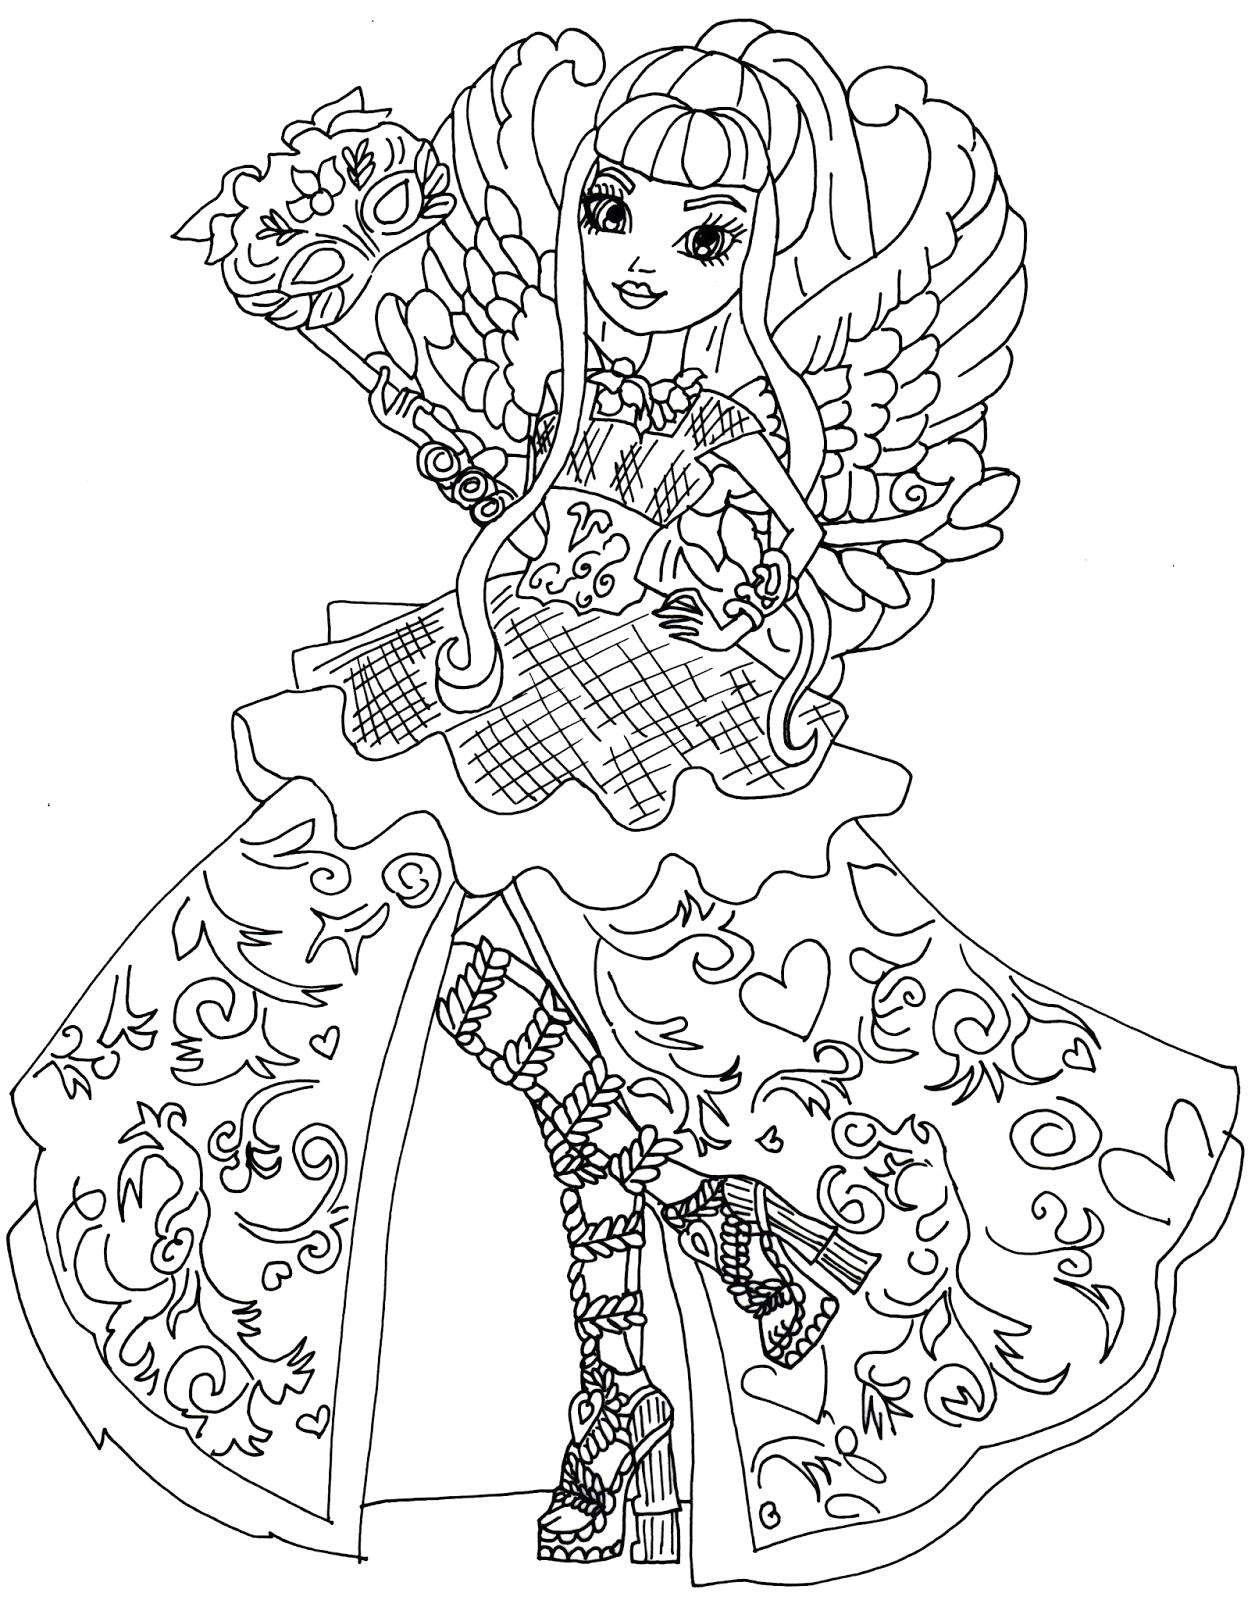 Ever after High Coloring Pages Dragon Games Ever after High Dragon Games Coloring Pages at